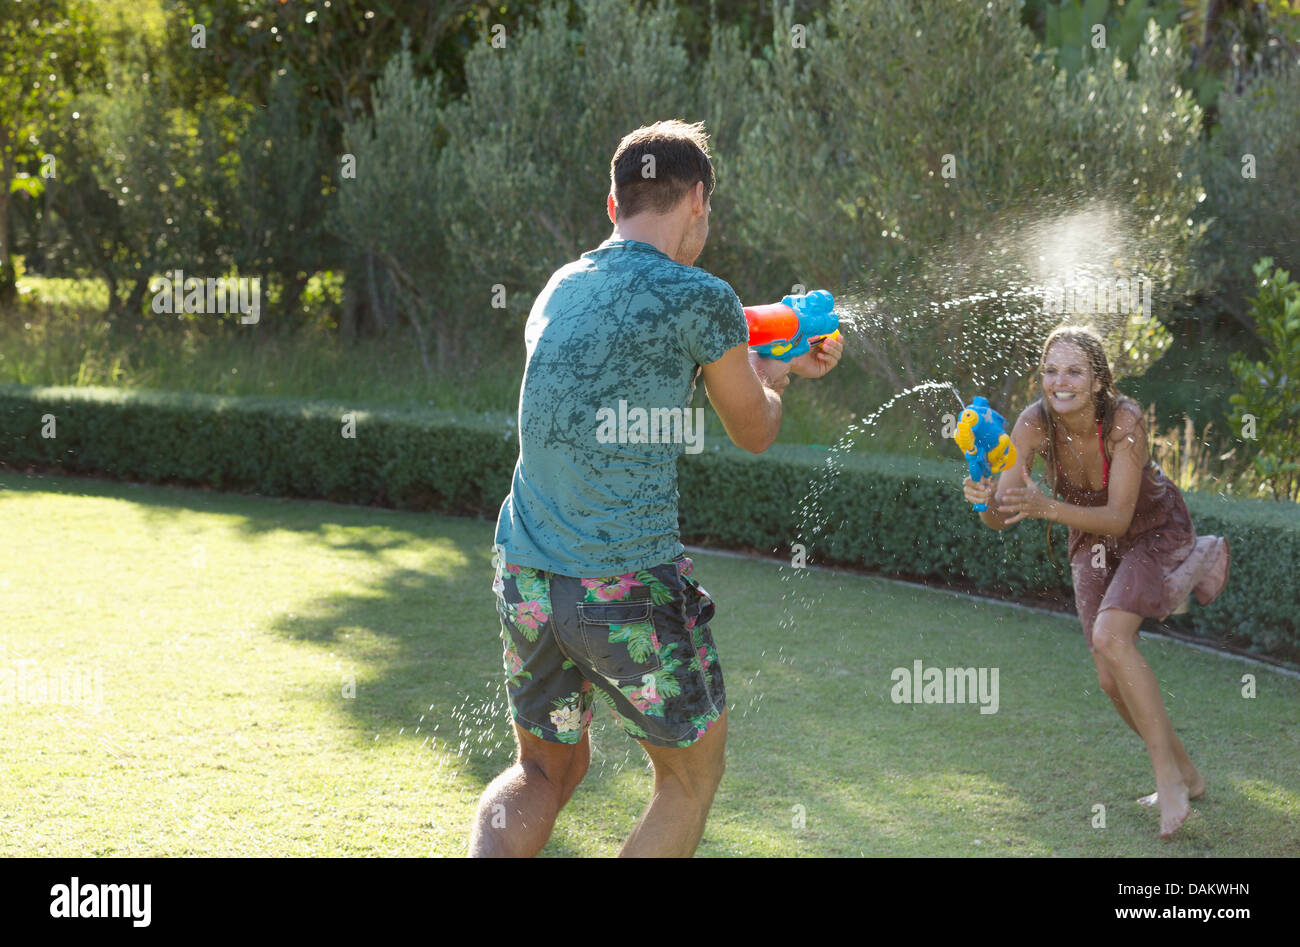 Couple playing with water guns in backyard - Stock Image